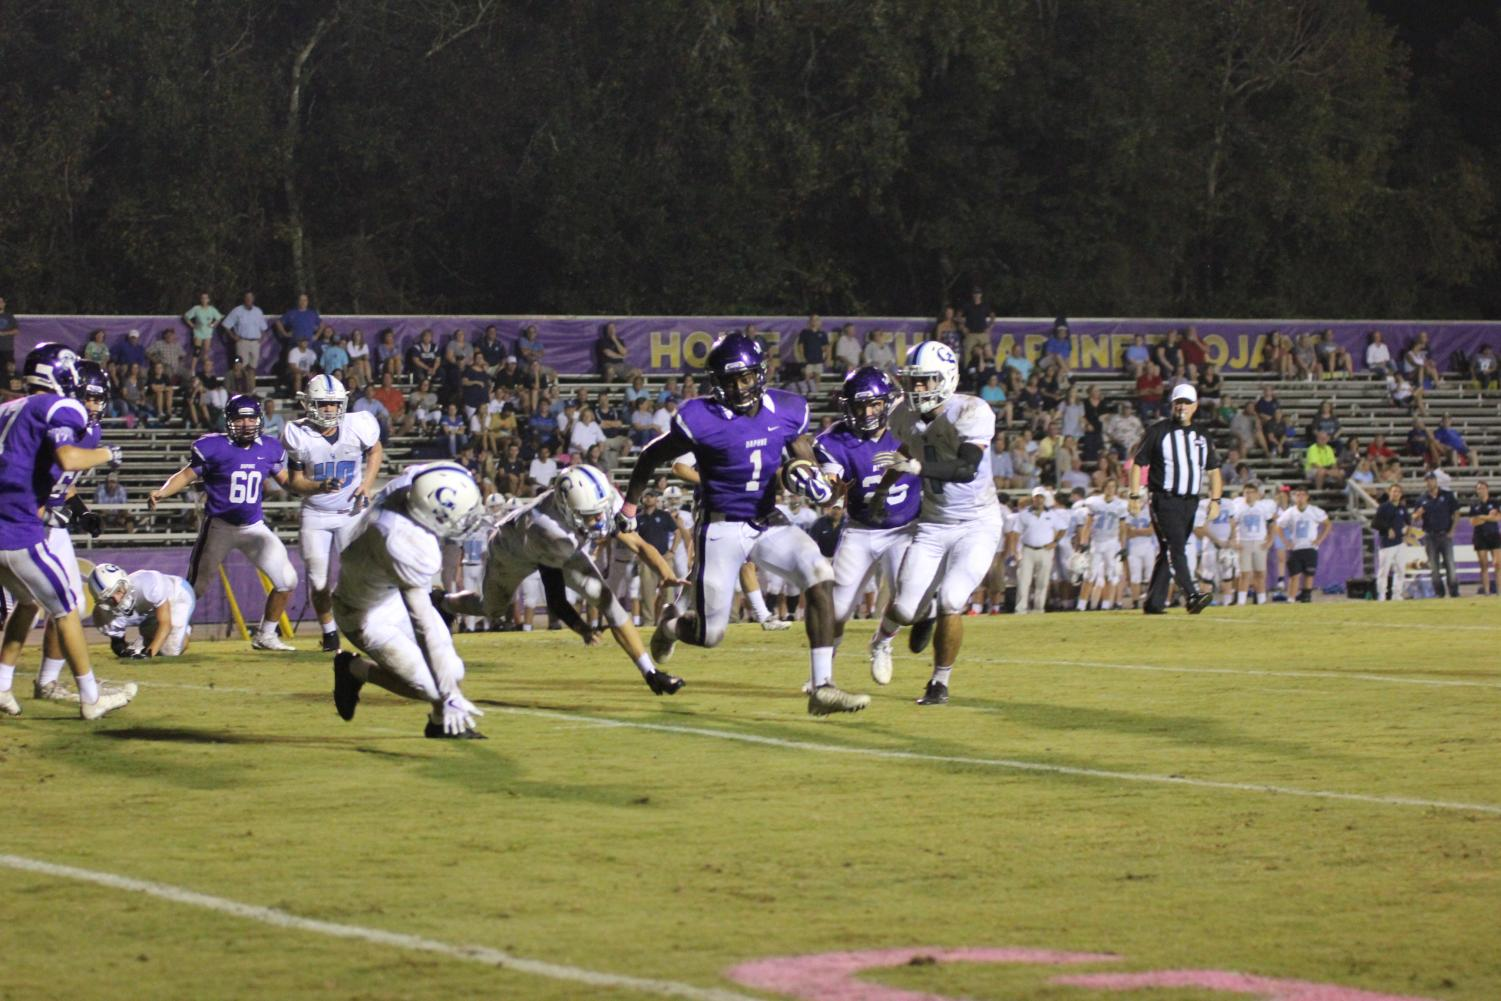 Mike Franklin, #1 Running Back, runs into the endzone to score a touchdown.